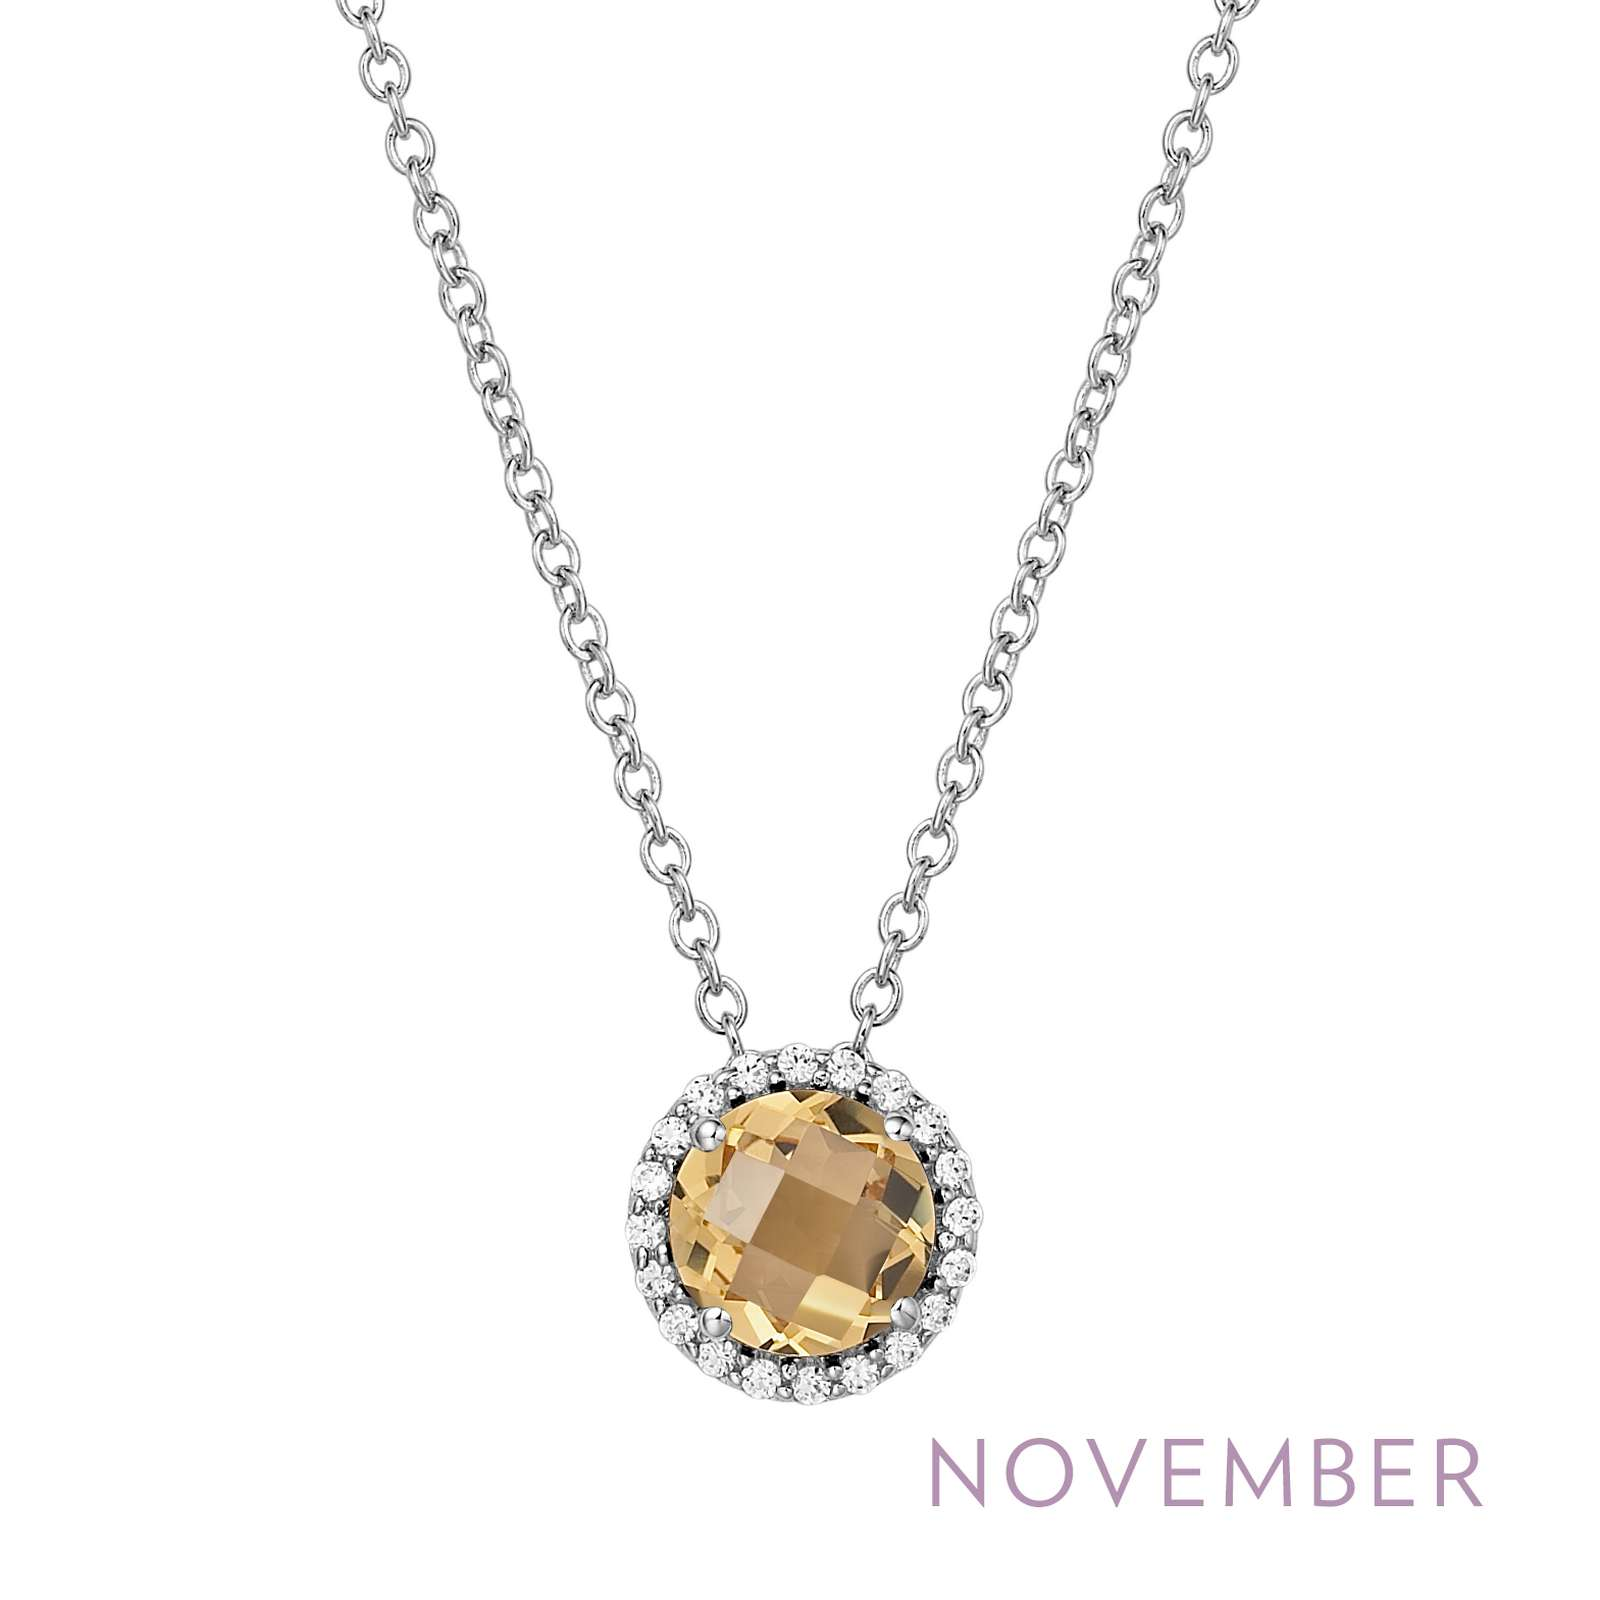 November - Citrine.  Adorn yourself with Lafonn's birthstone jewelry. The necklace is set with a genuine citrine surrounded by Lafonn's signature Lassaire simulated diamonds in sterling silver bonded with platinum.